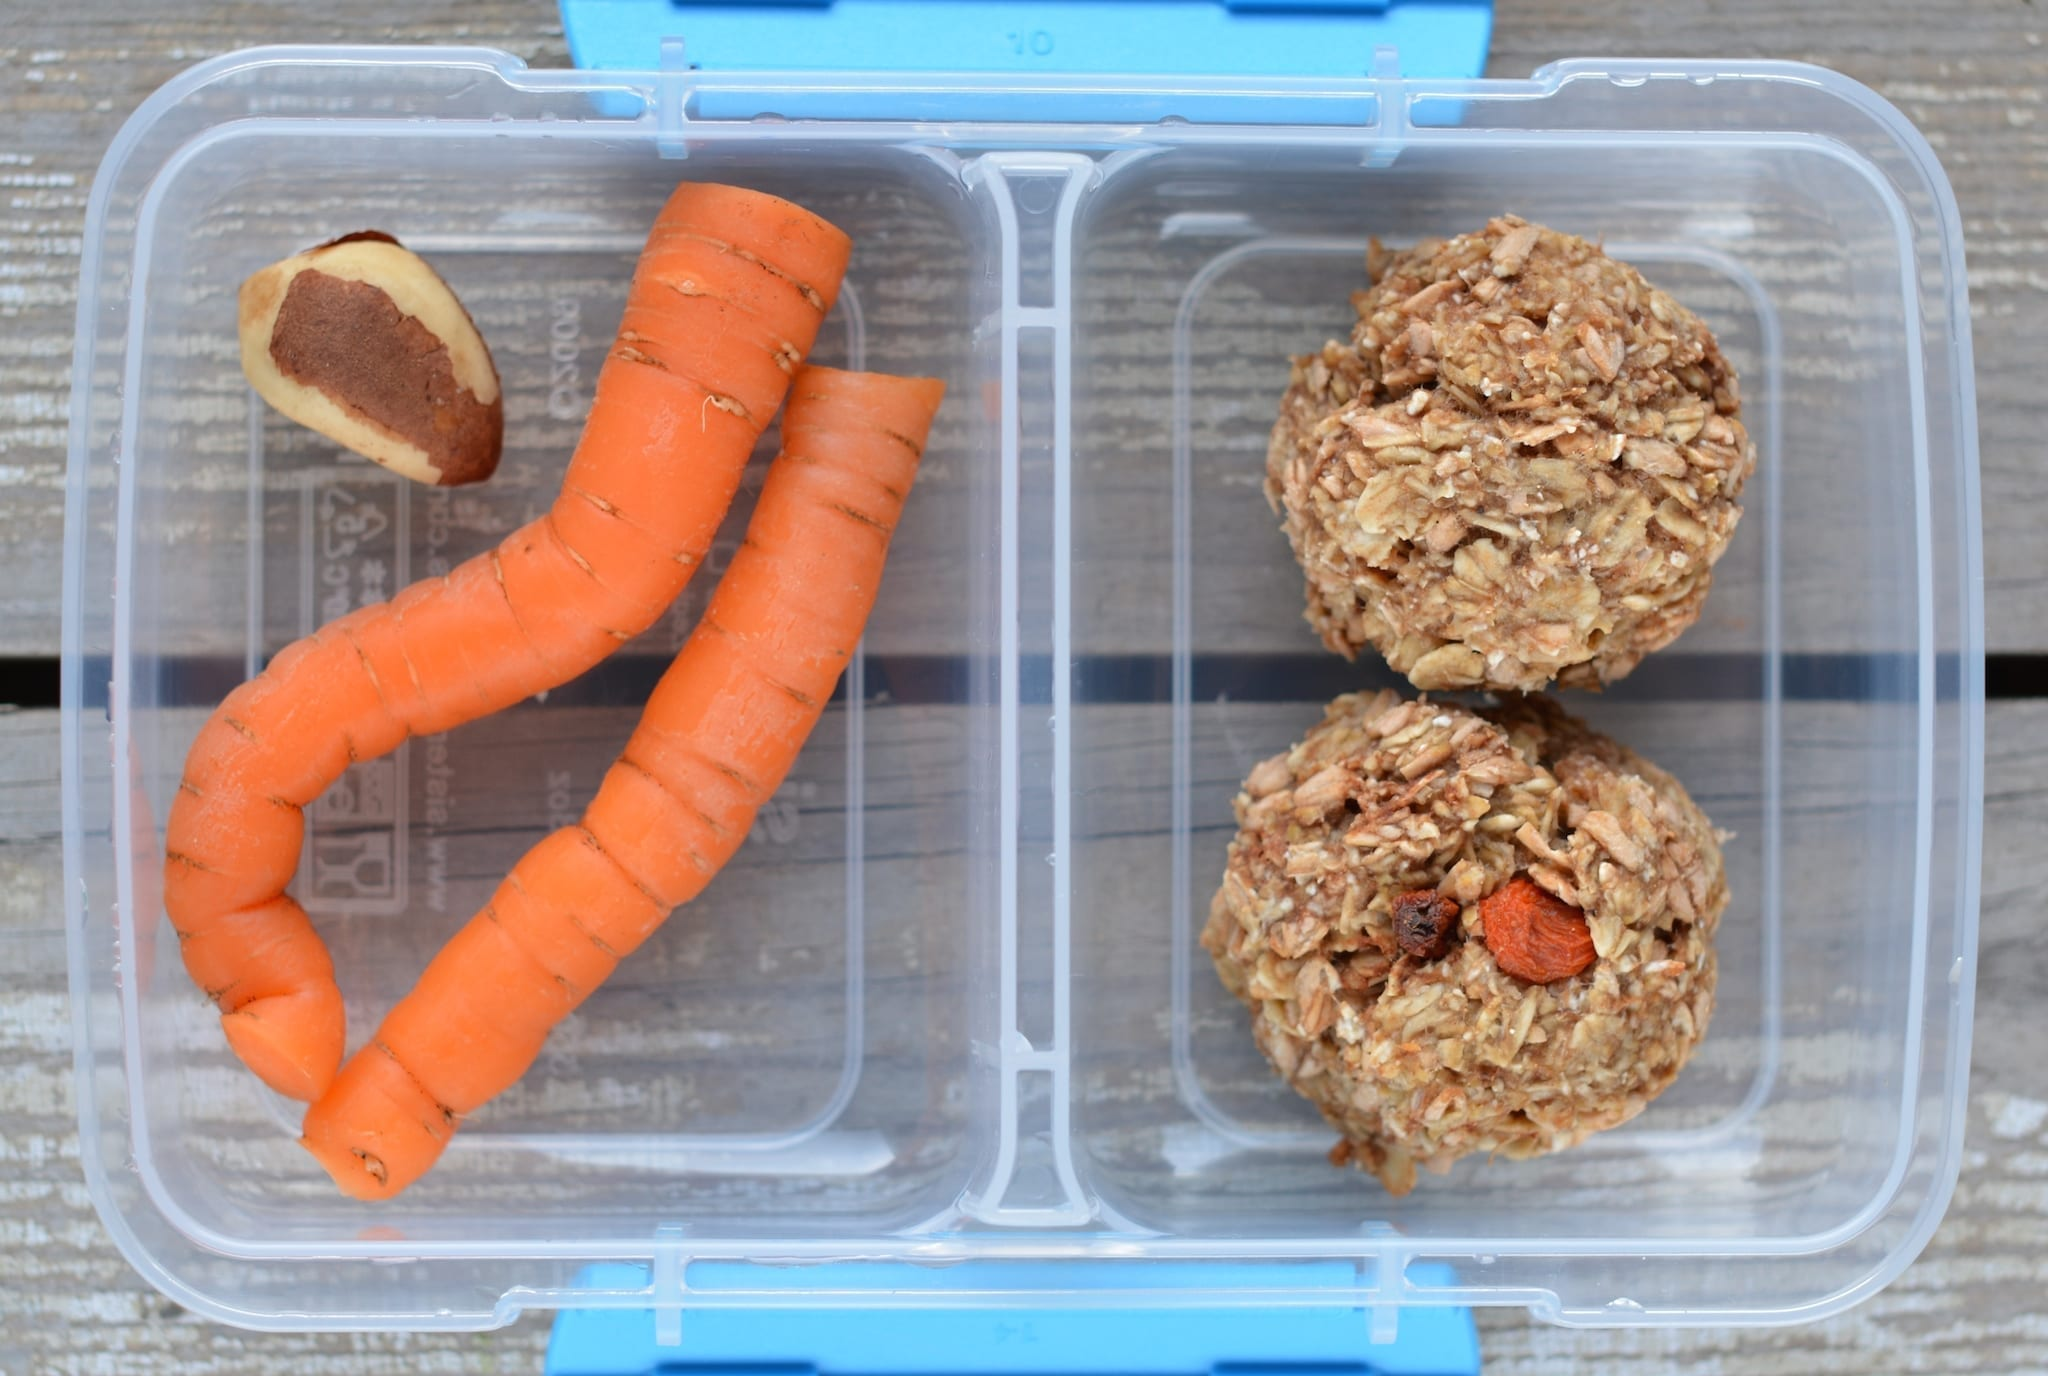 Snack box with carrots, cookies and a nut